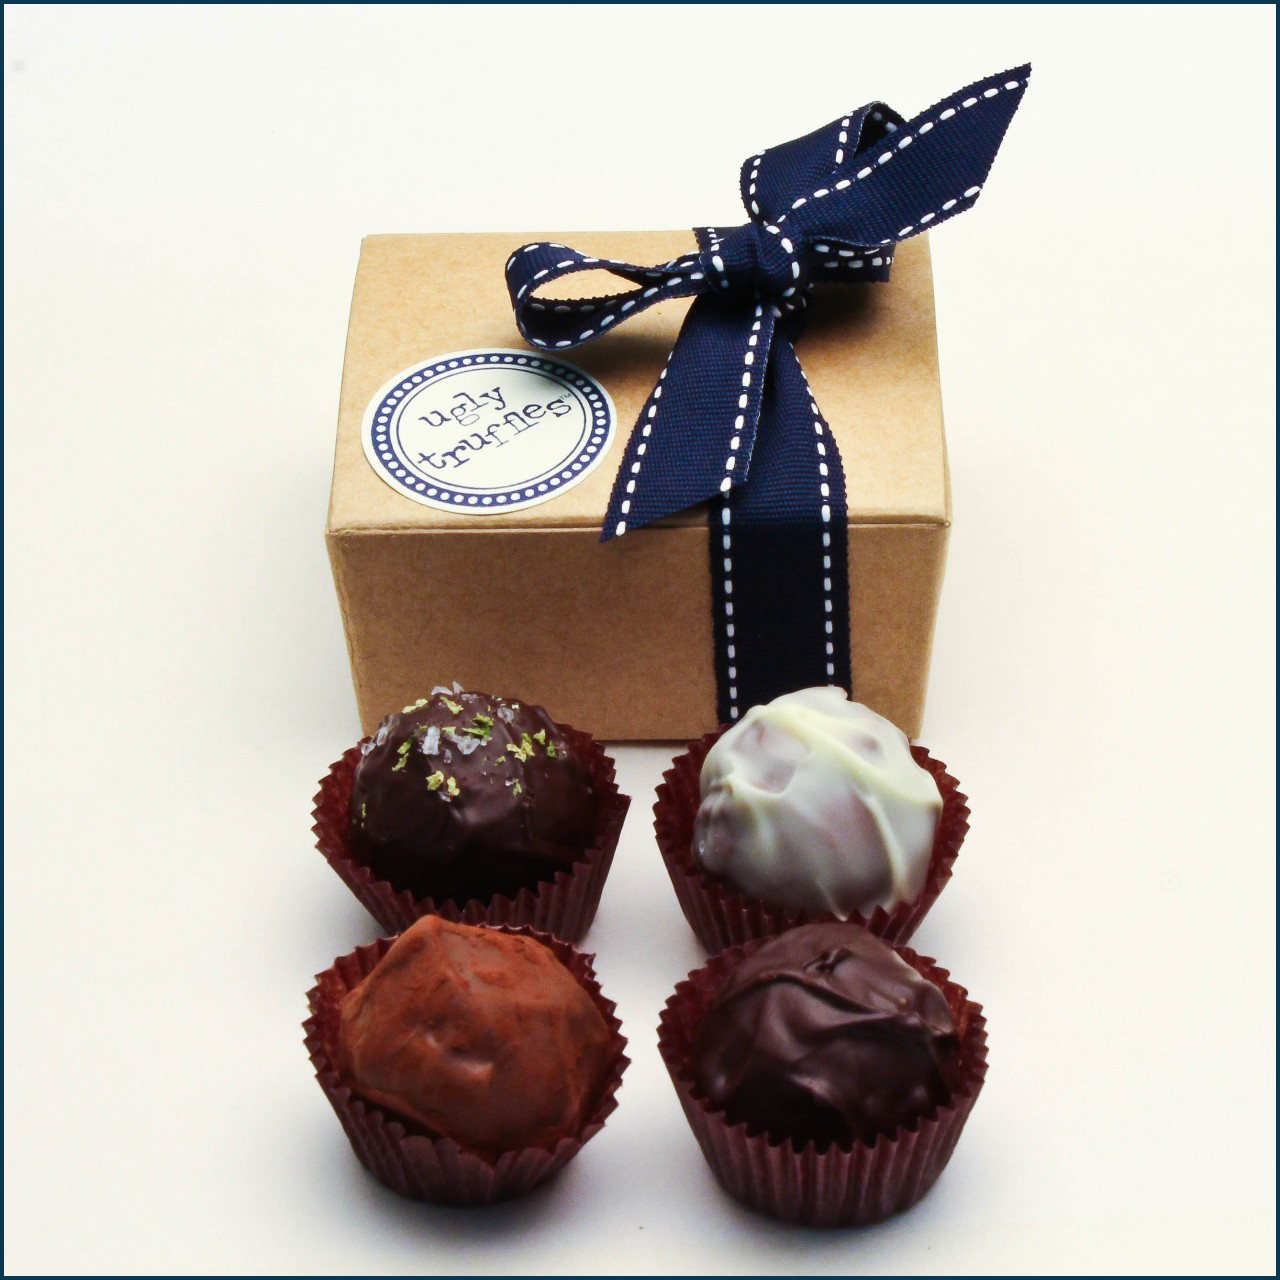 4 piece chocolate truffle 